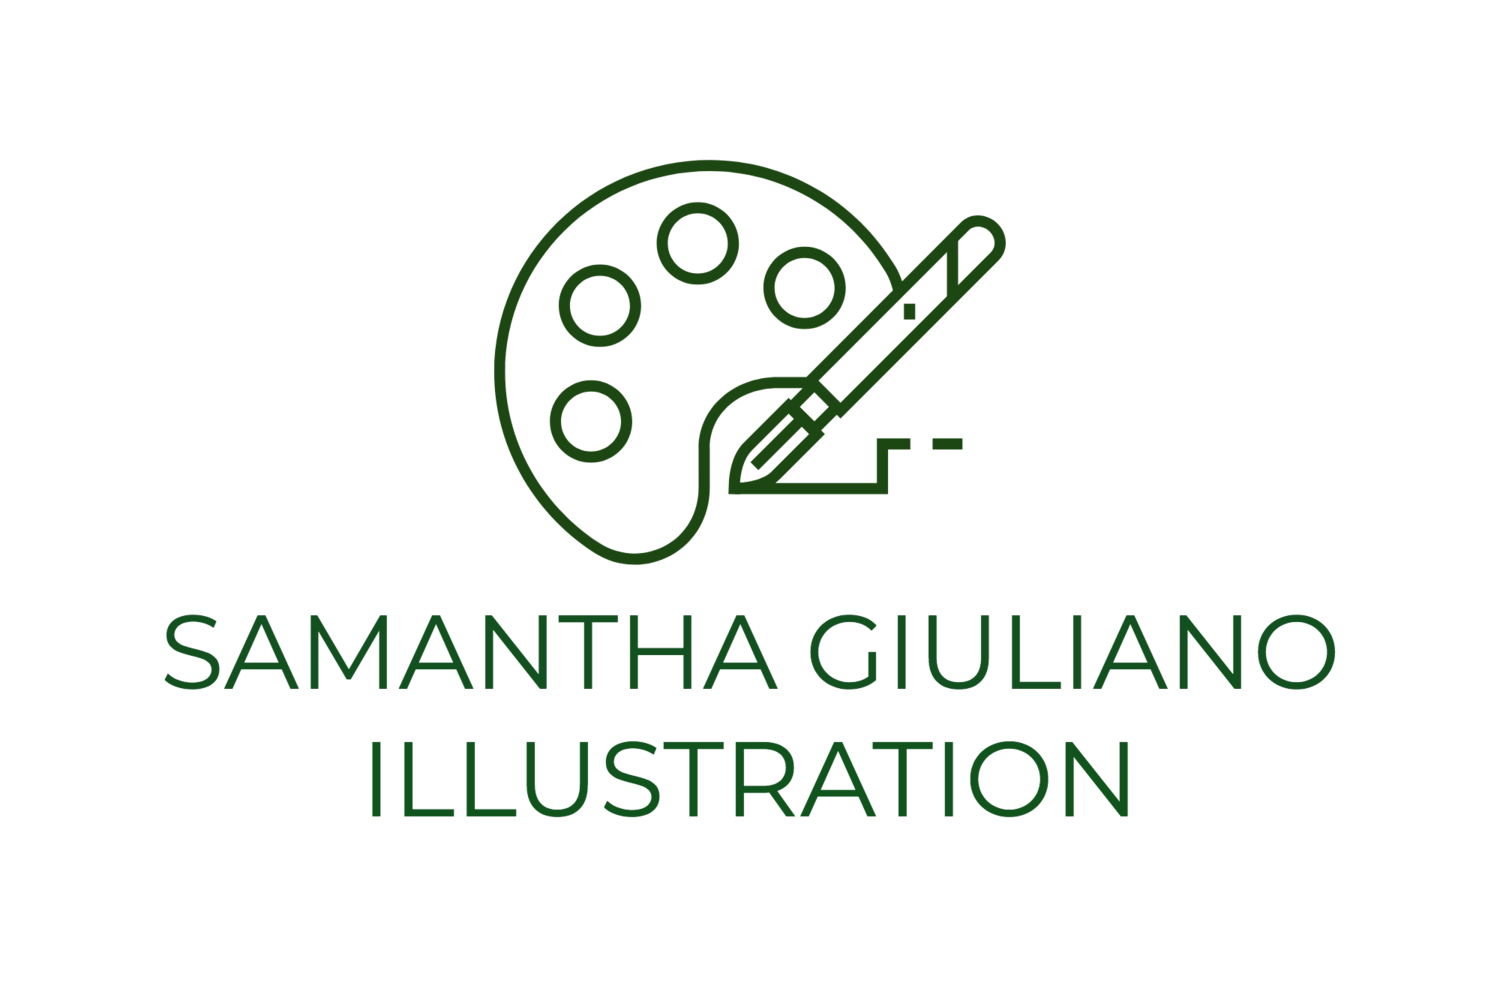 Samantha Giuliano Illustration